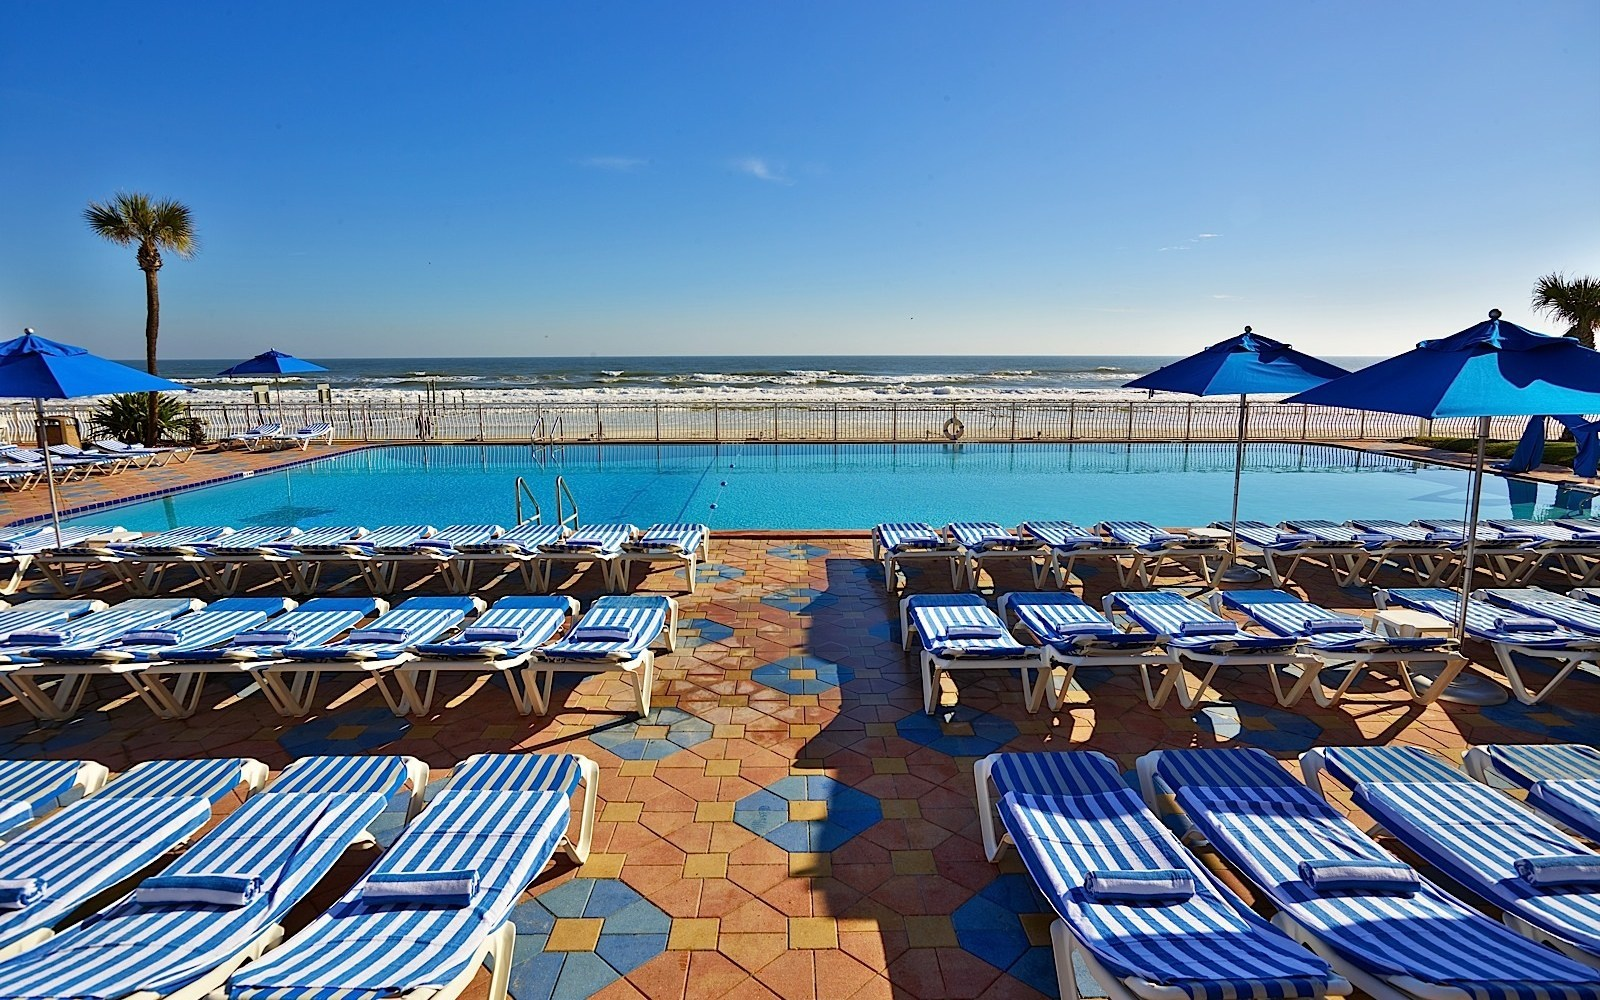 Perennial Vacation Club - Daytona Perennial vacation club at daytona beach pictures